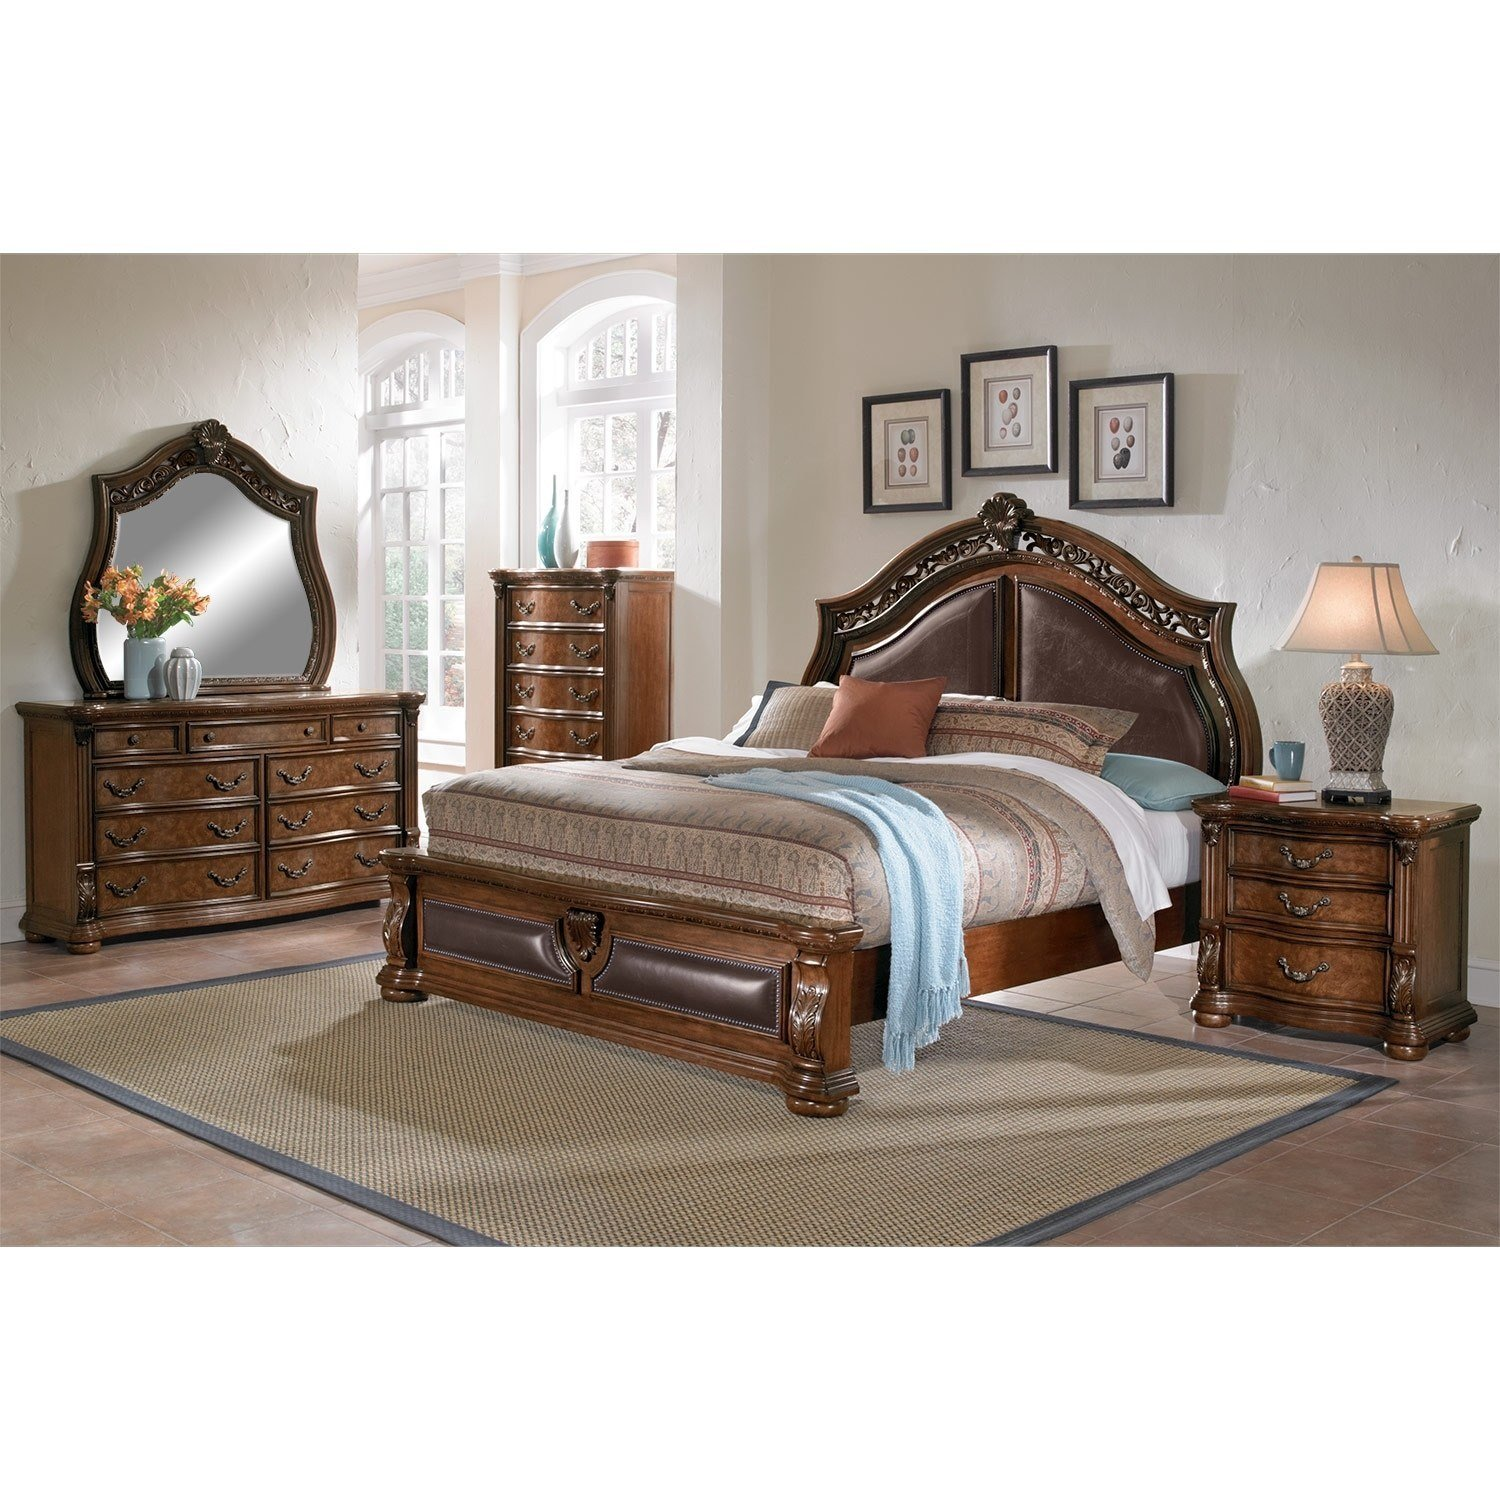 Best Morocco Queen Bed Pecan Value City Furniture With Pictures